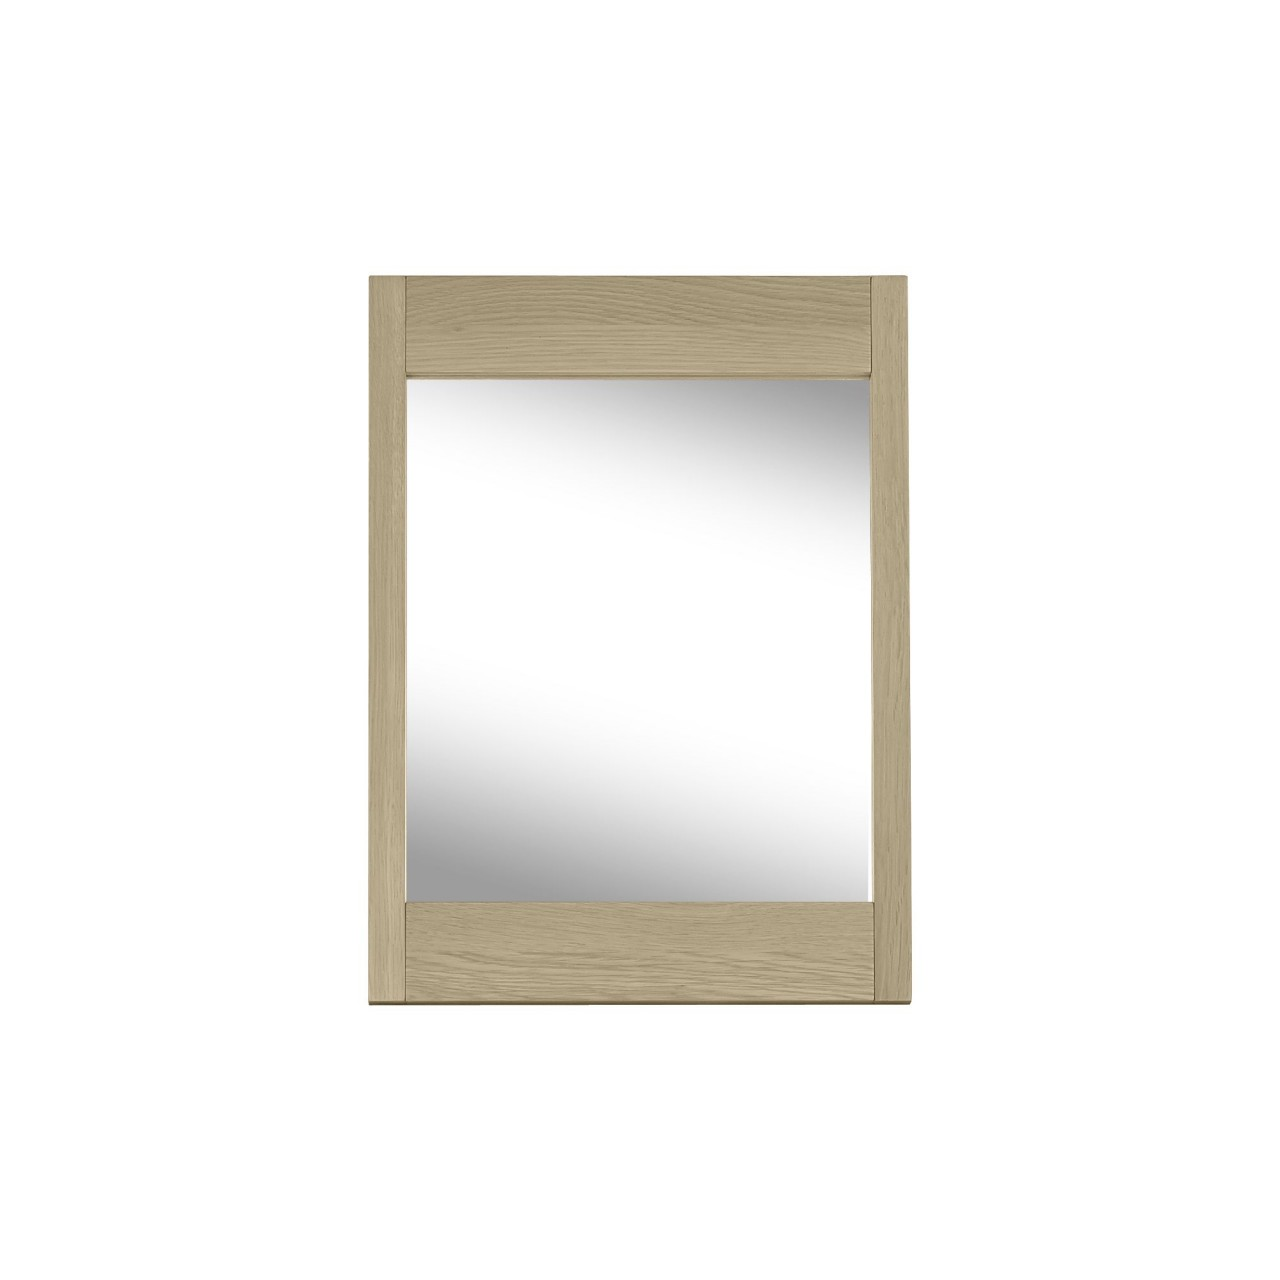 Photo of Bentley designs rimini aged oak and weathered oak vanity mirror